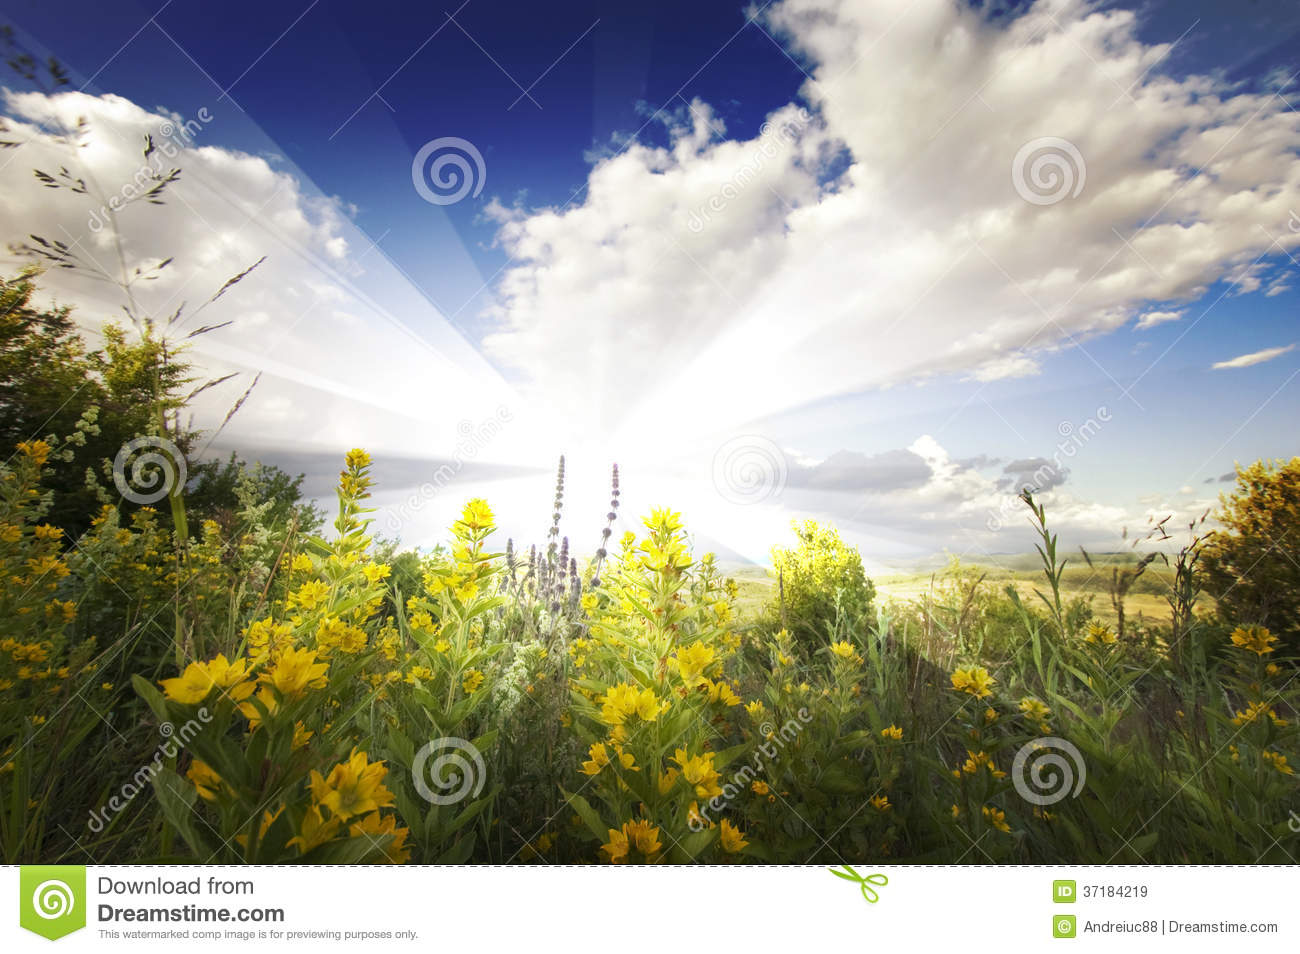 Summer landscape with sun rays, clouds, blue sky and yellow flowers